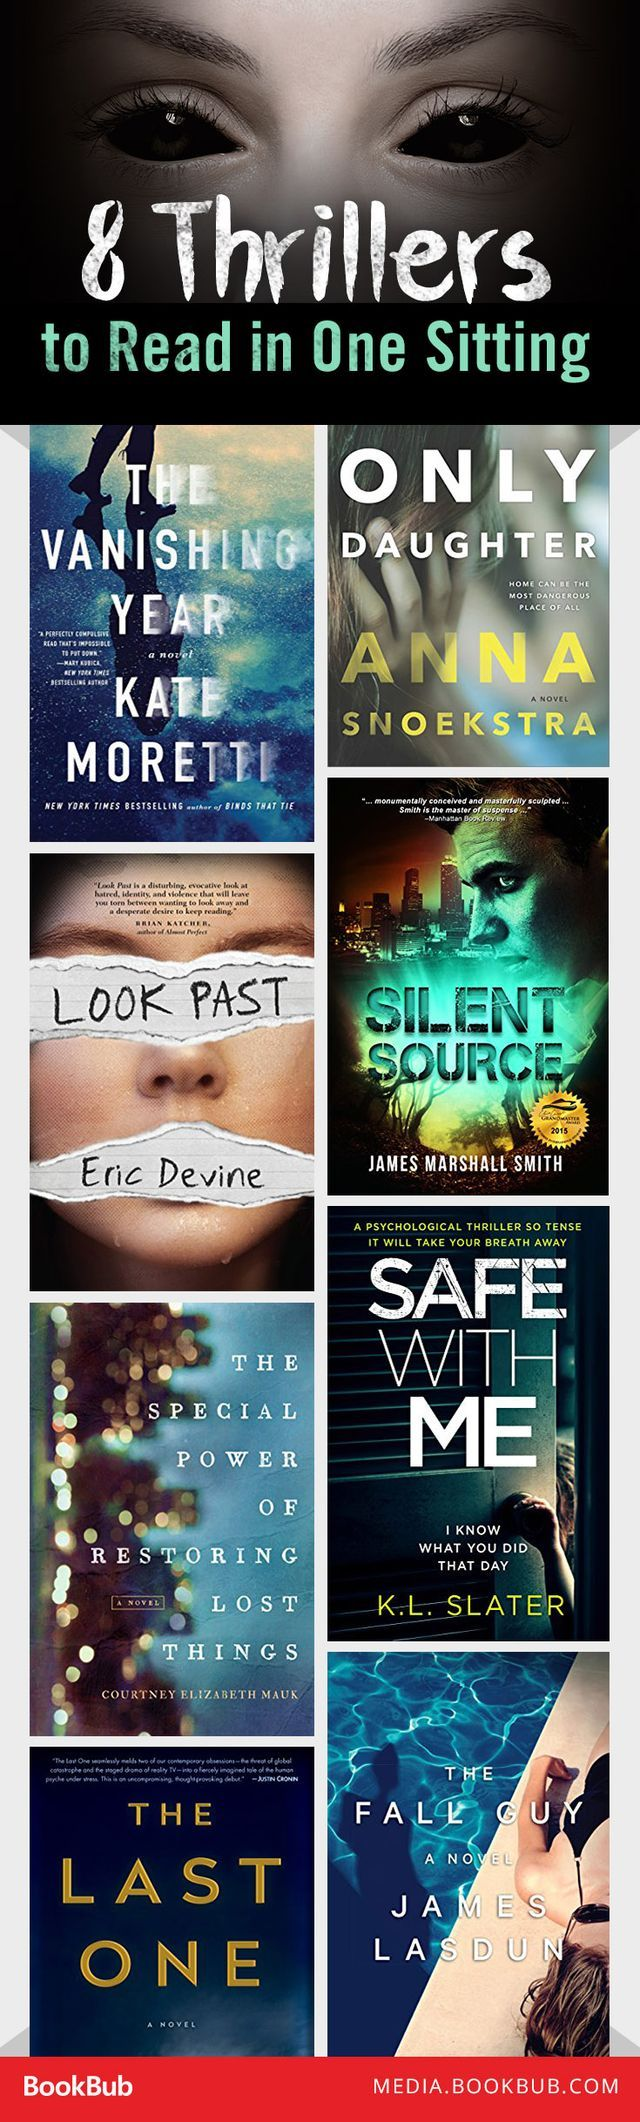 8 Thrillers to Read in One Sitting - 8 thriller books to read in one sitting.